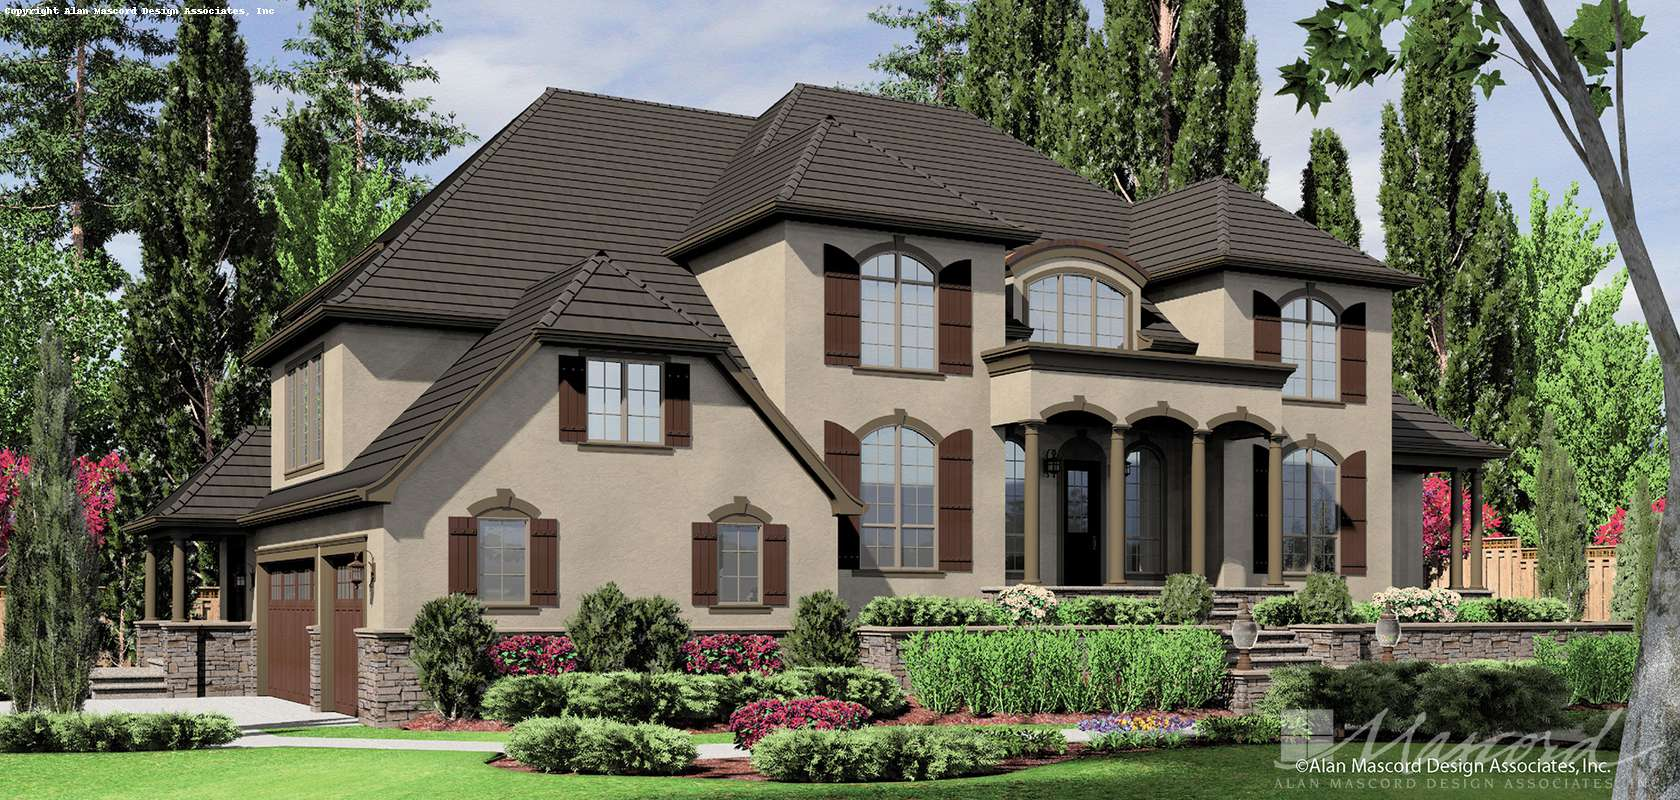 Mascord House Plan 2432: The Douglas